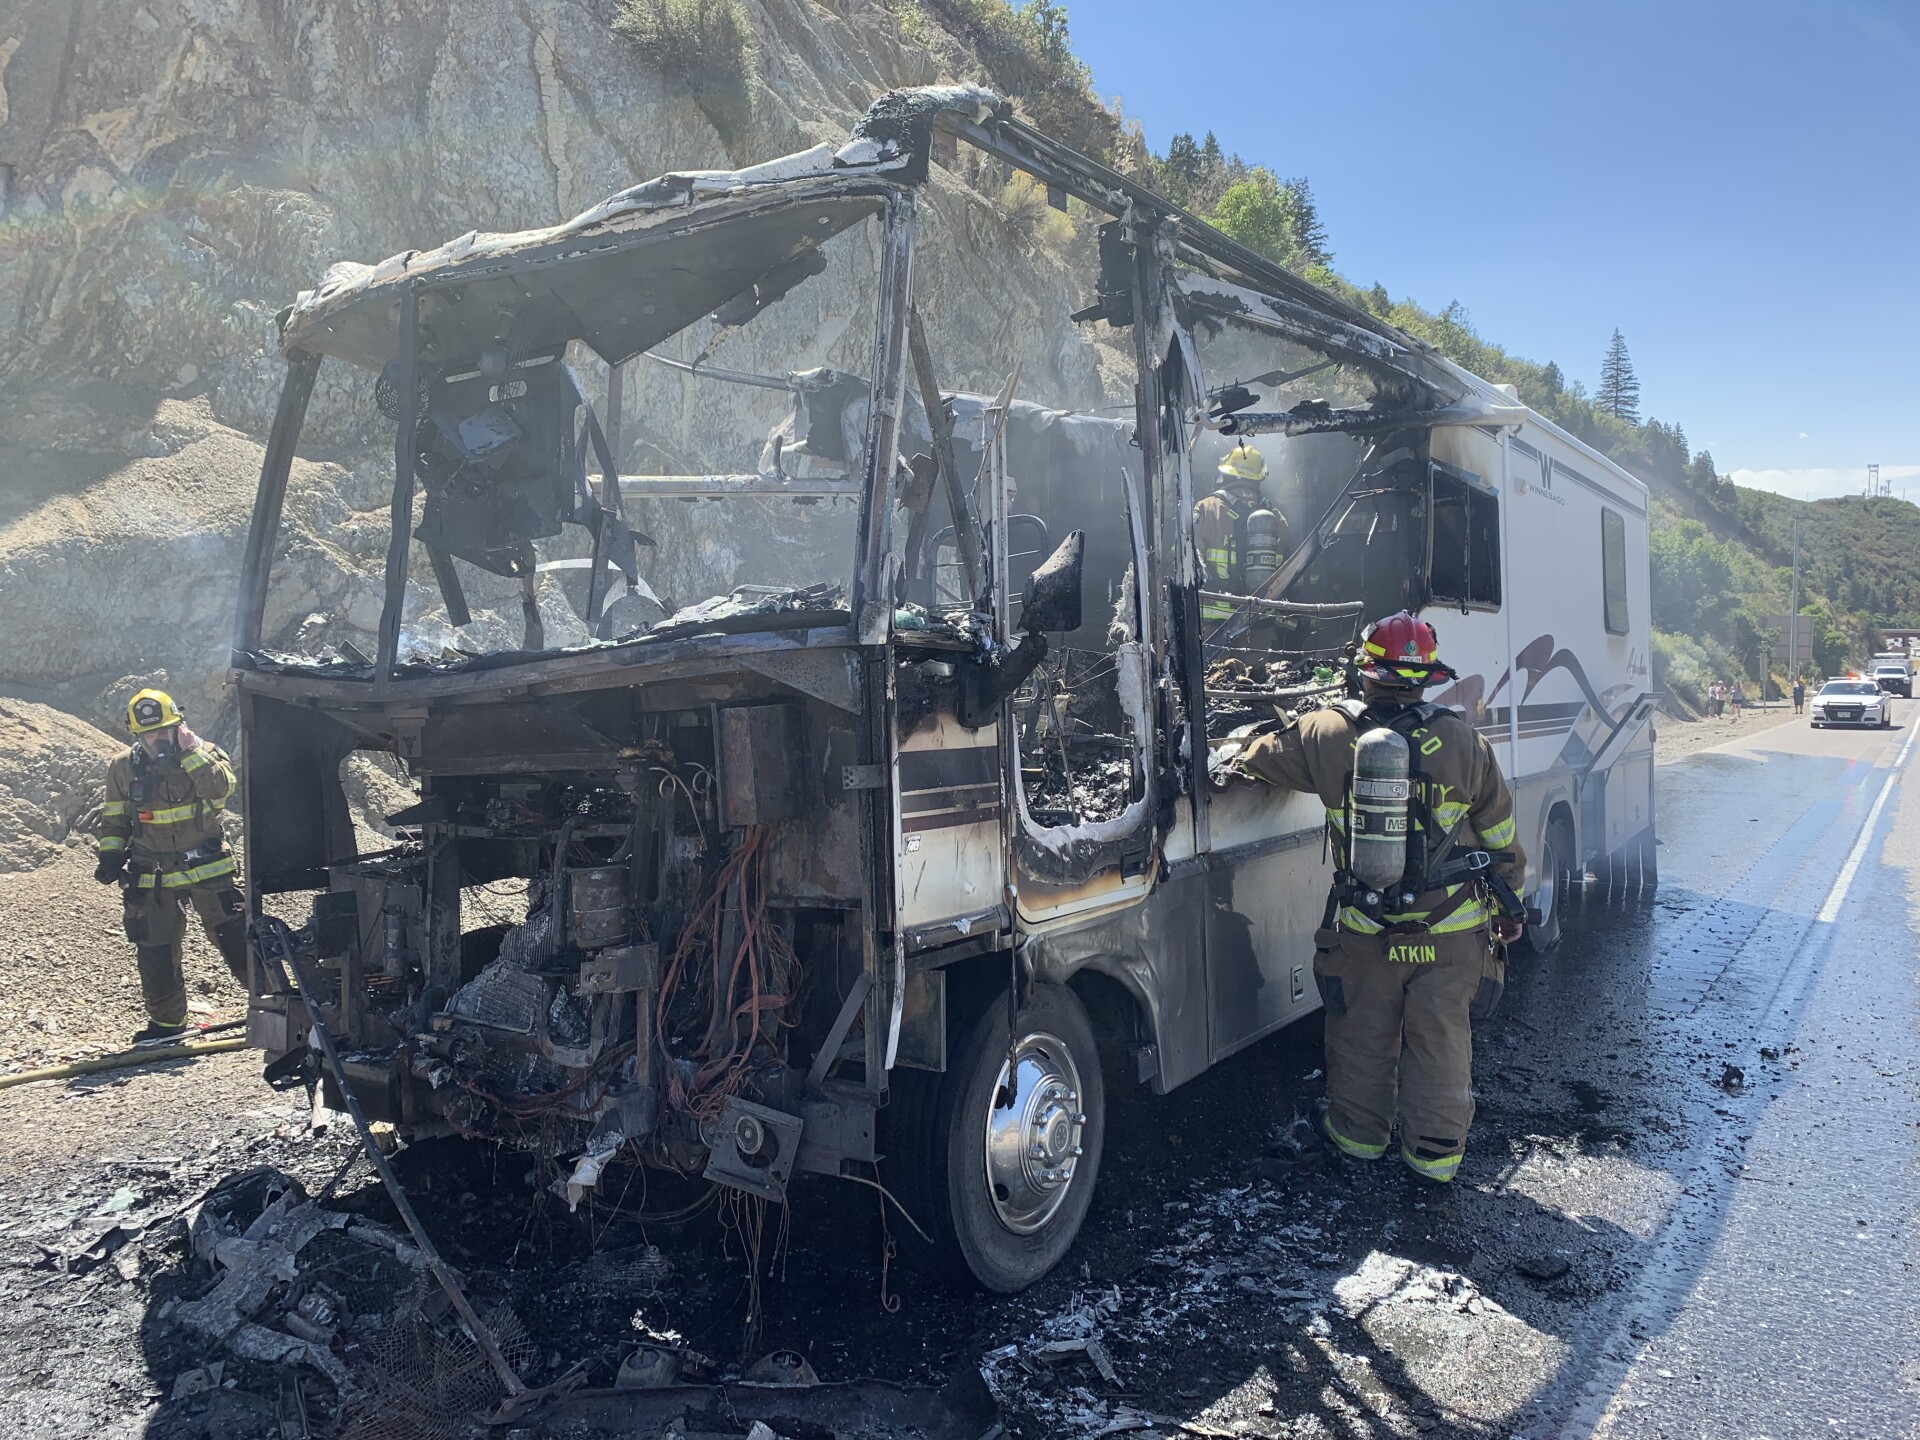 Photos: RV catches fire in Parley's Canyon; passing driver rear-ends fire truck on scene